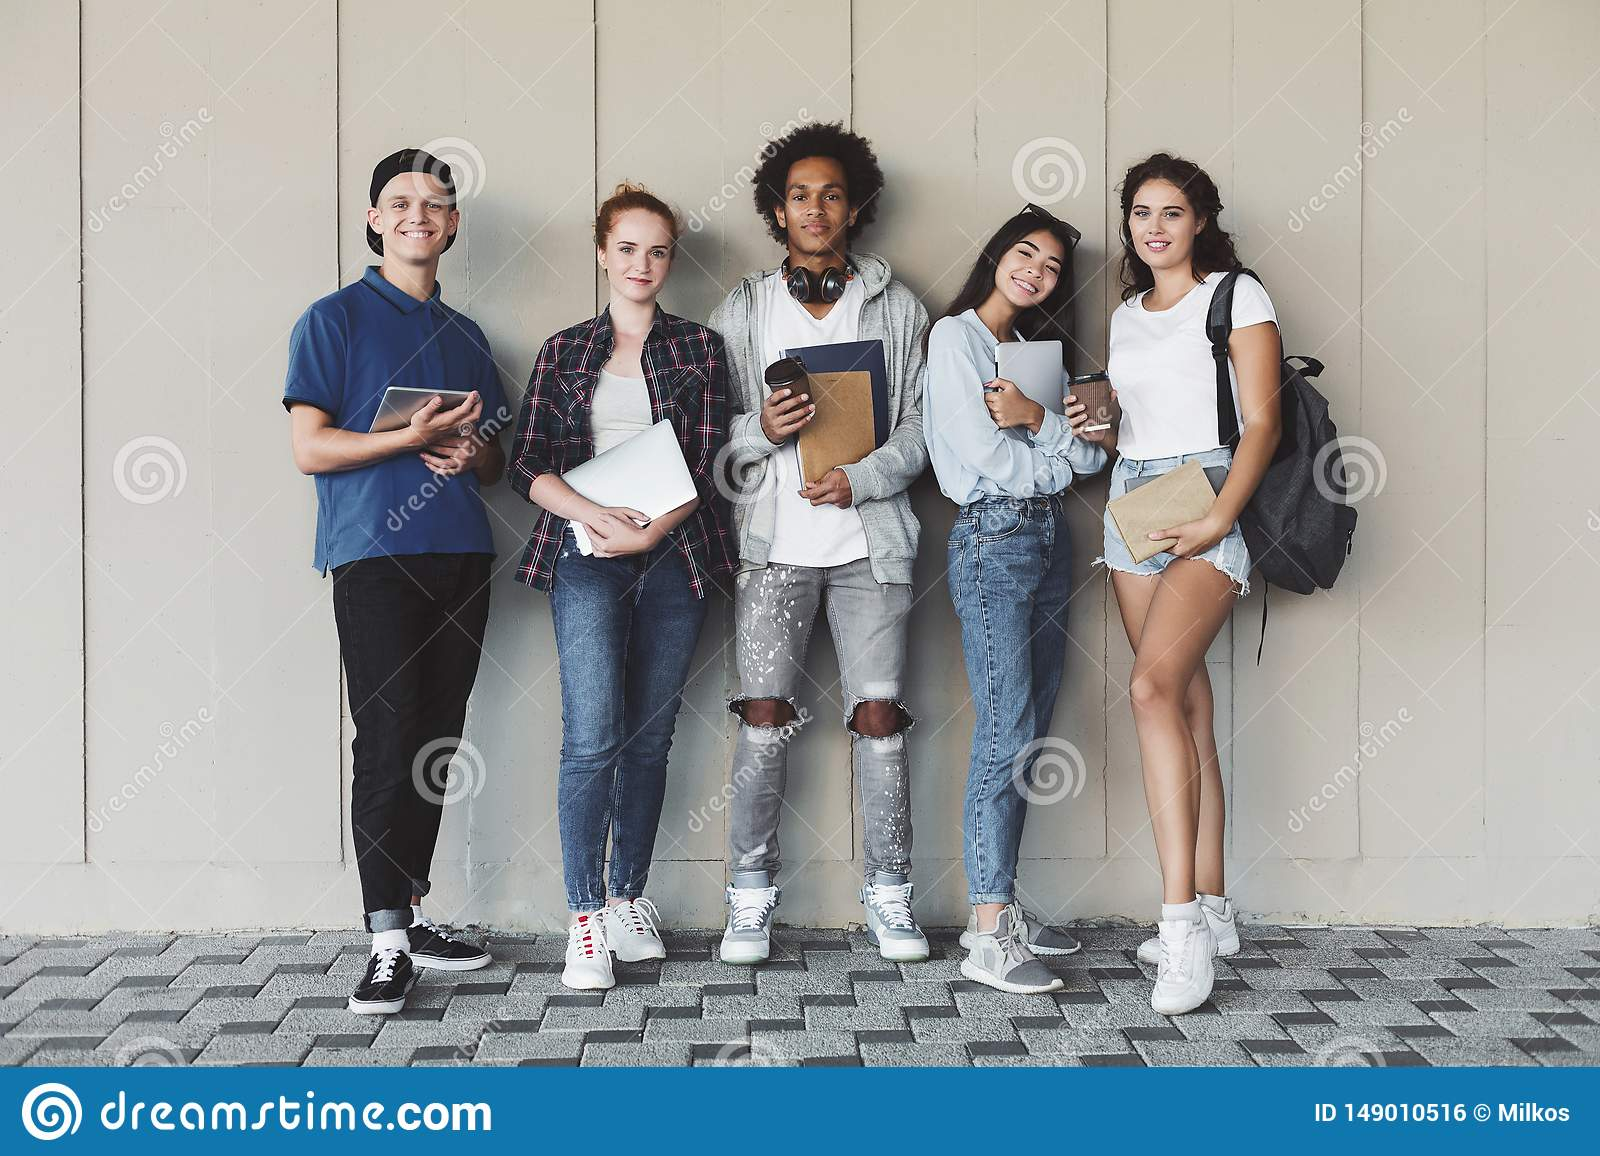 Happy college students posing with studying staff at campus wall